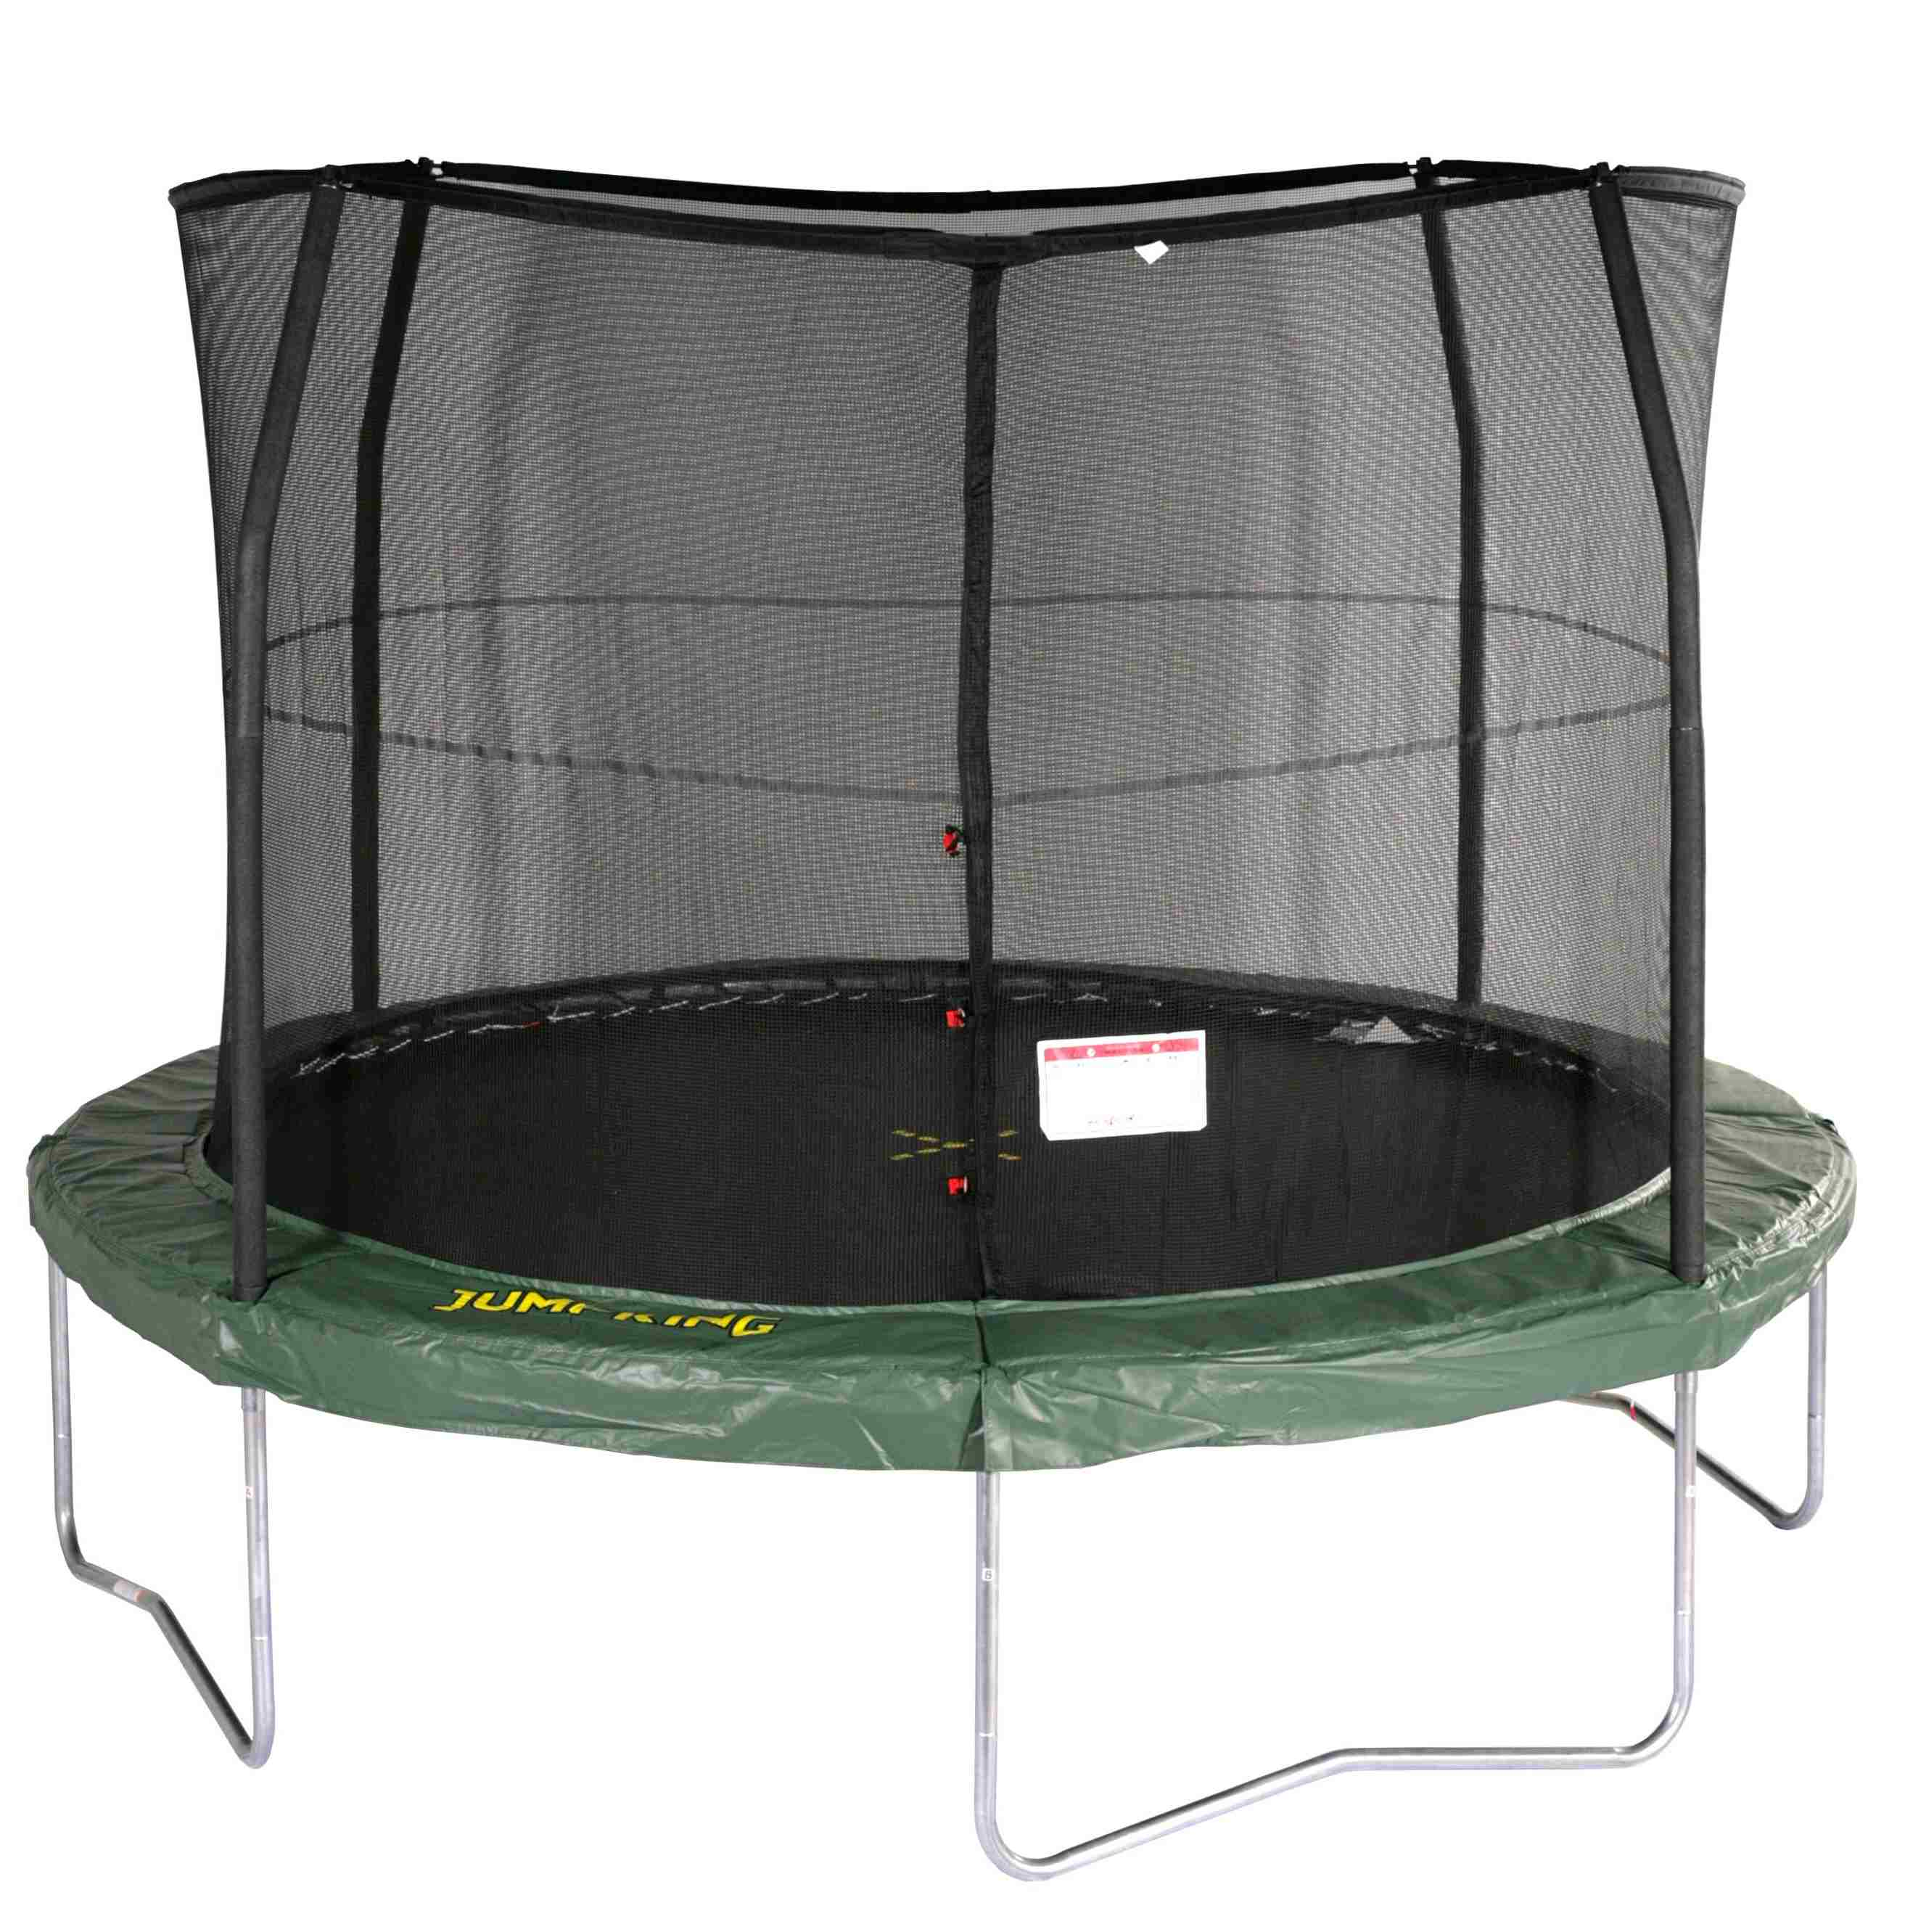 Jumpking 14ft Jumppod Deluxe Trampoline With Enclosure: 10ft Jumppod Trampoline At Asda £99.99